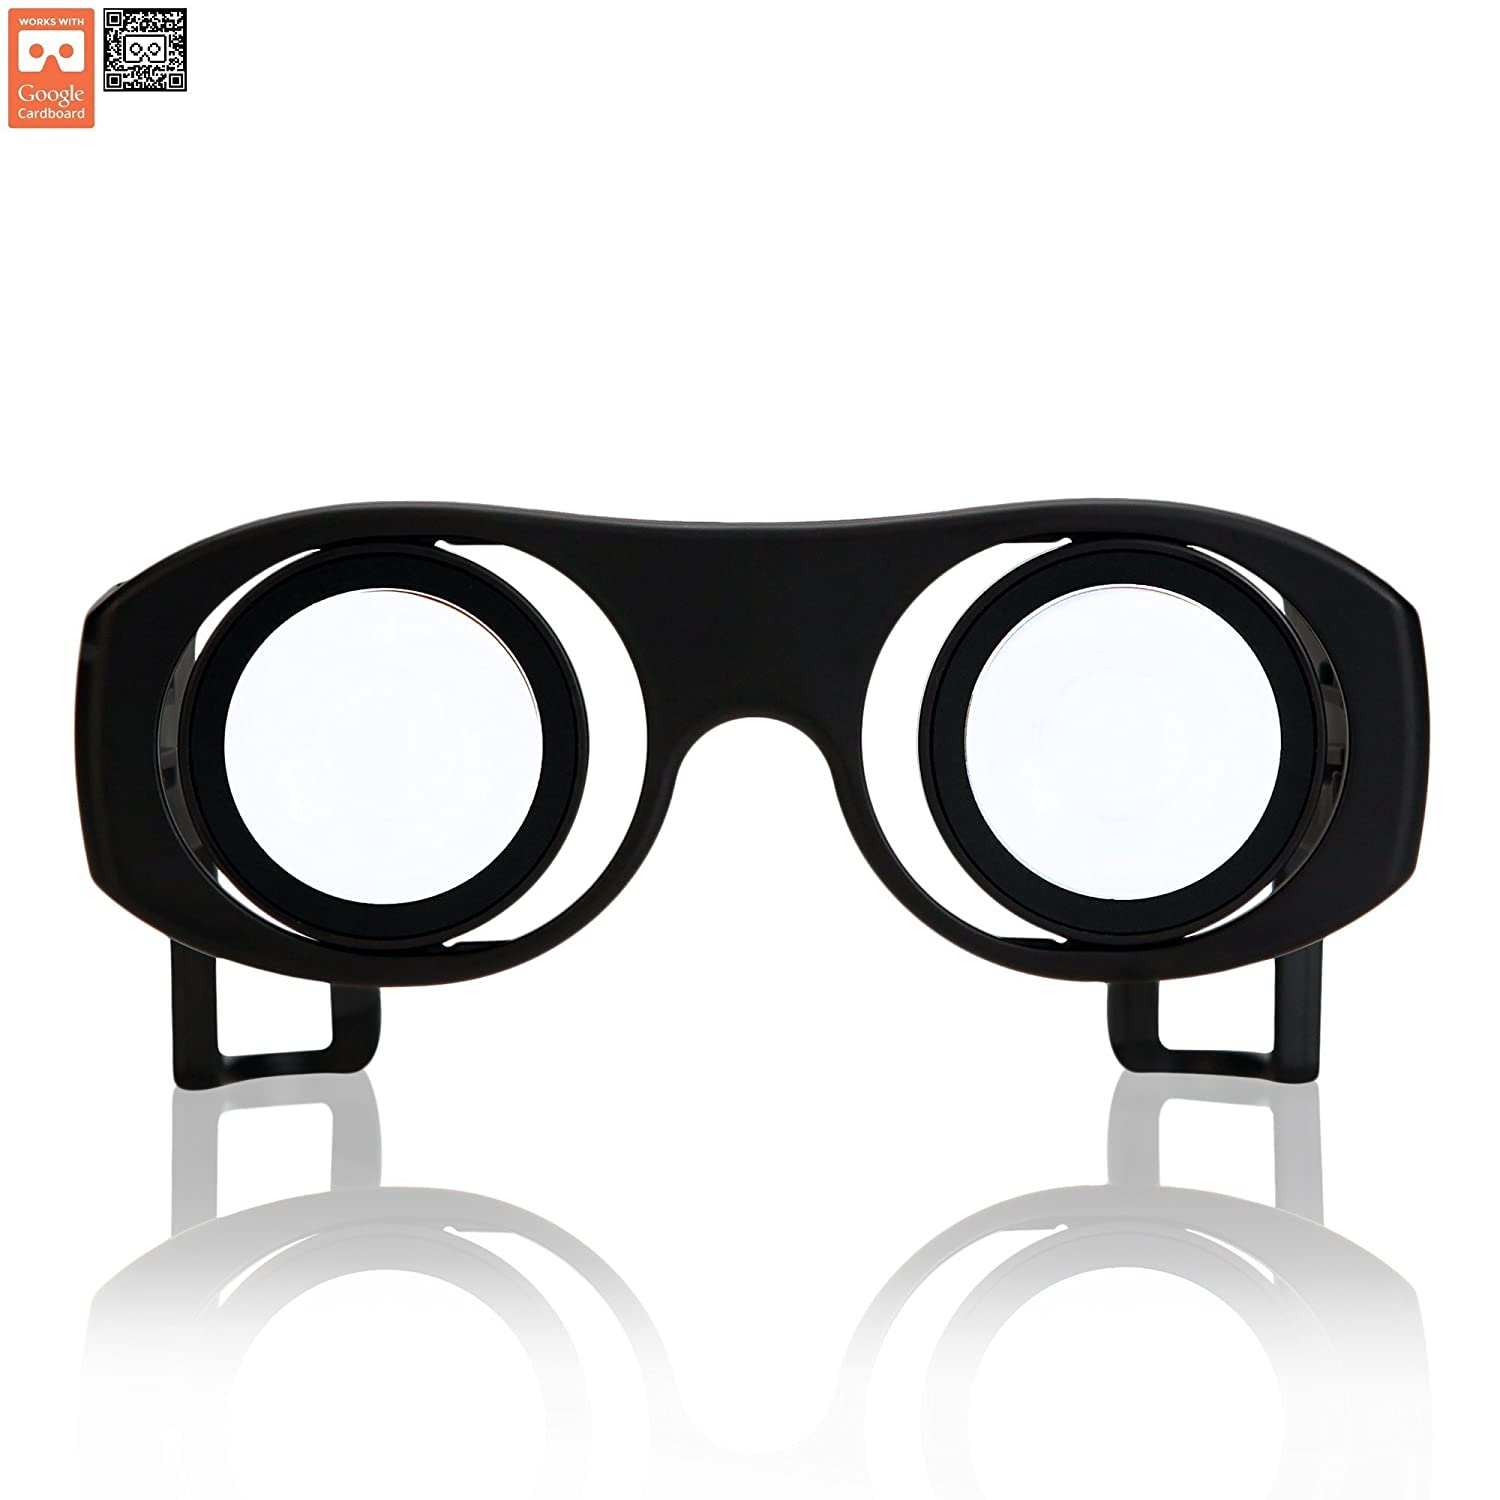 Amazon.com: Virtual Reality Goggles Goggle Tech C1-Glass 3D Glasses ...